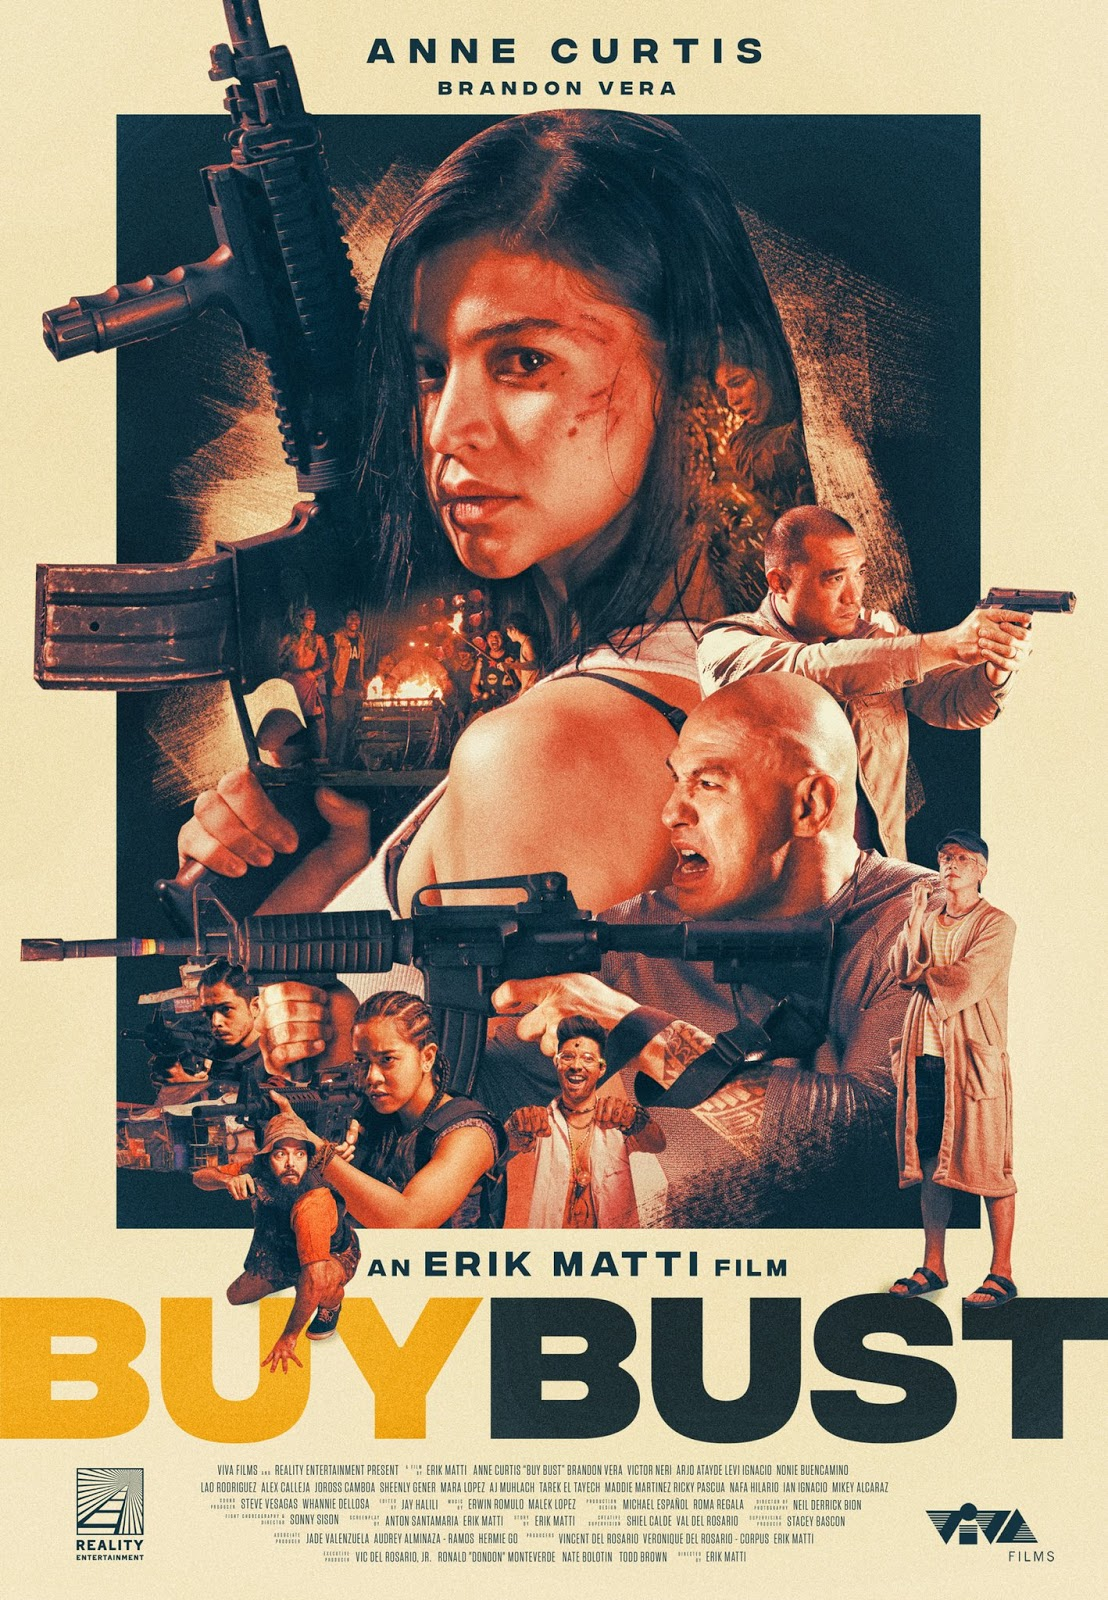 1 Buybust